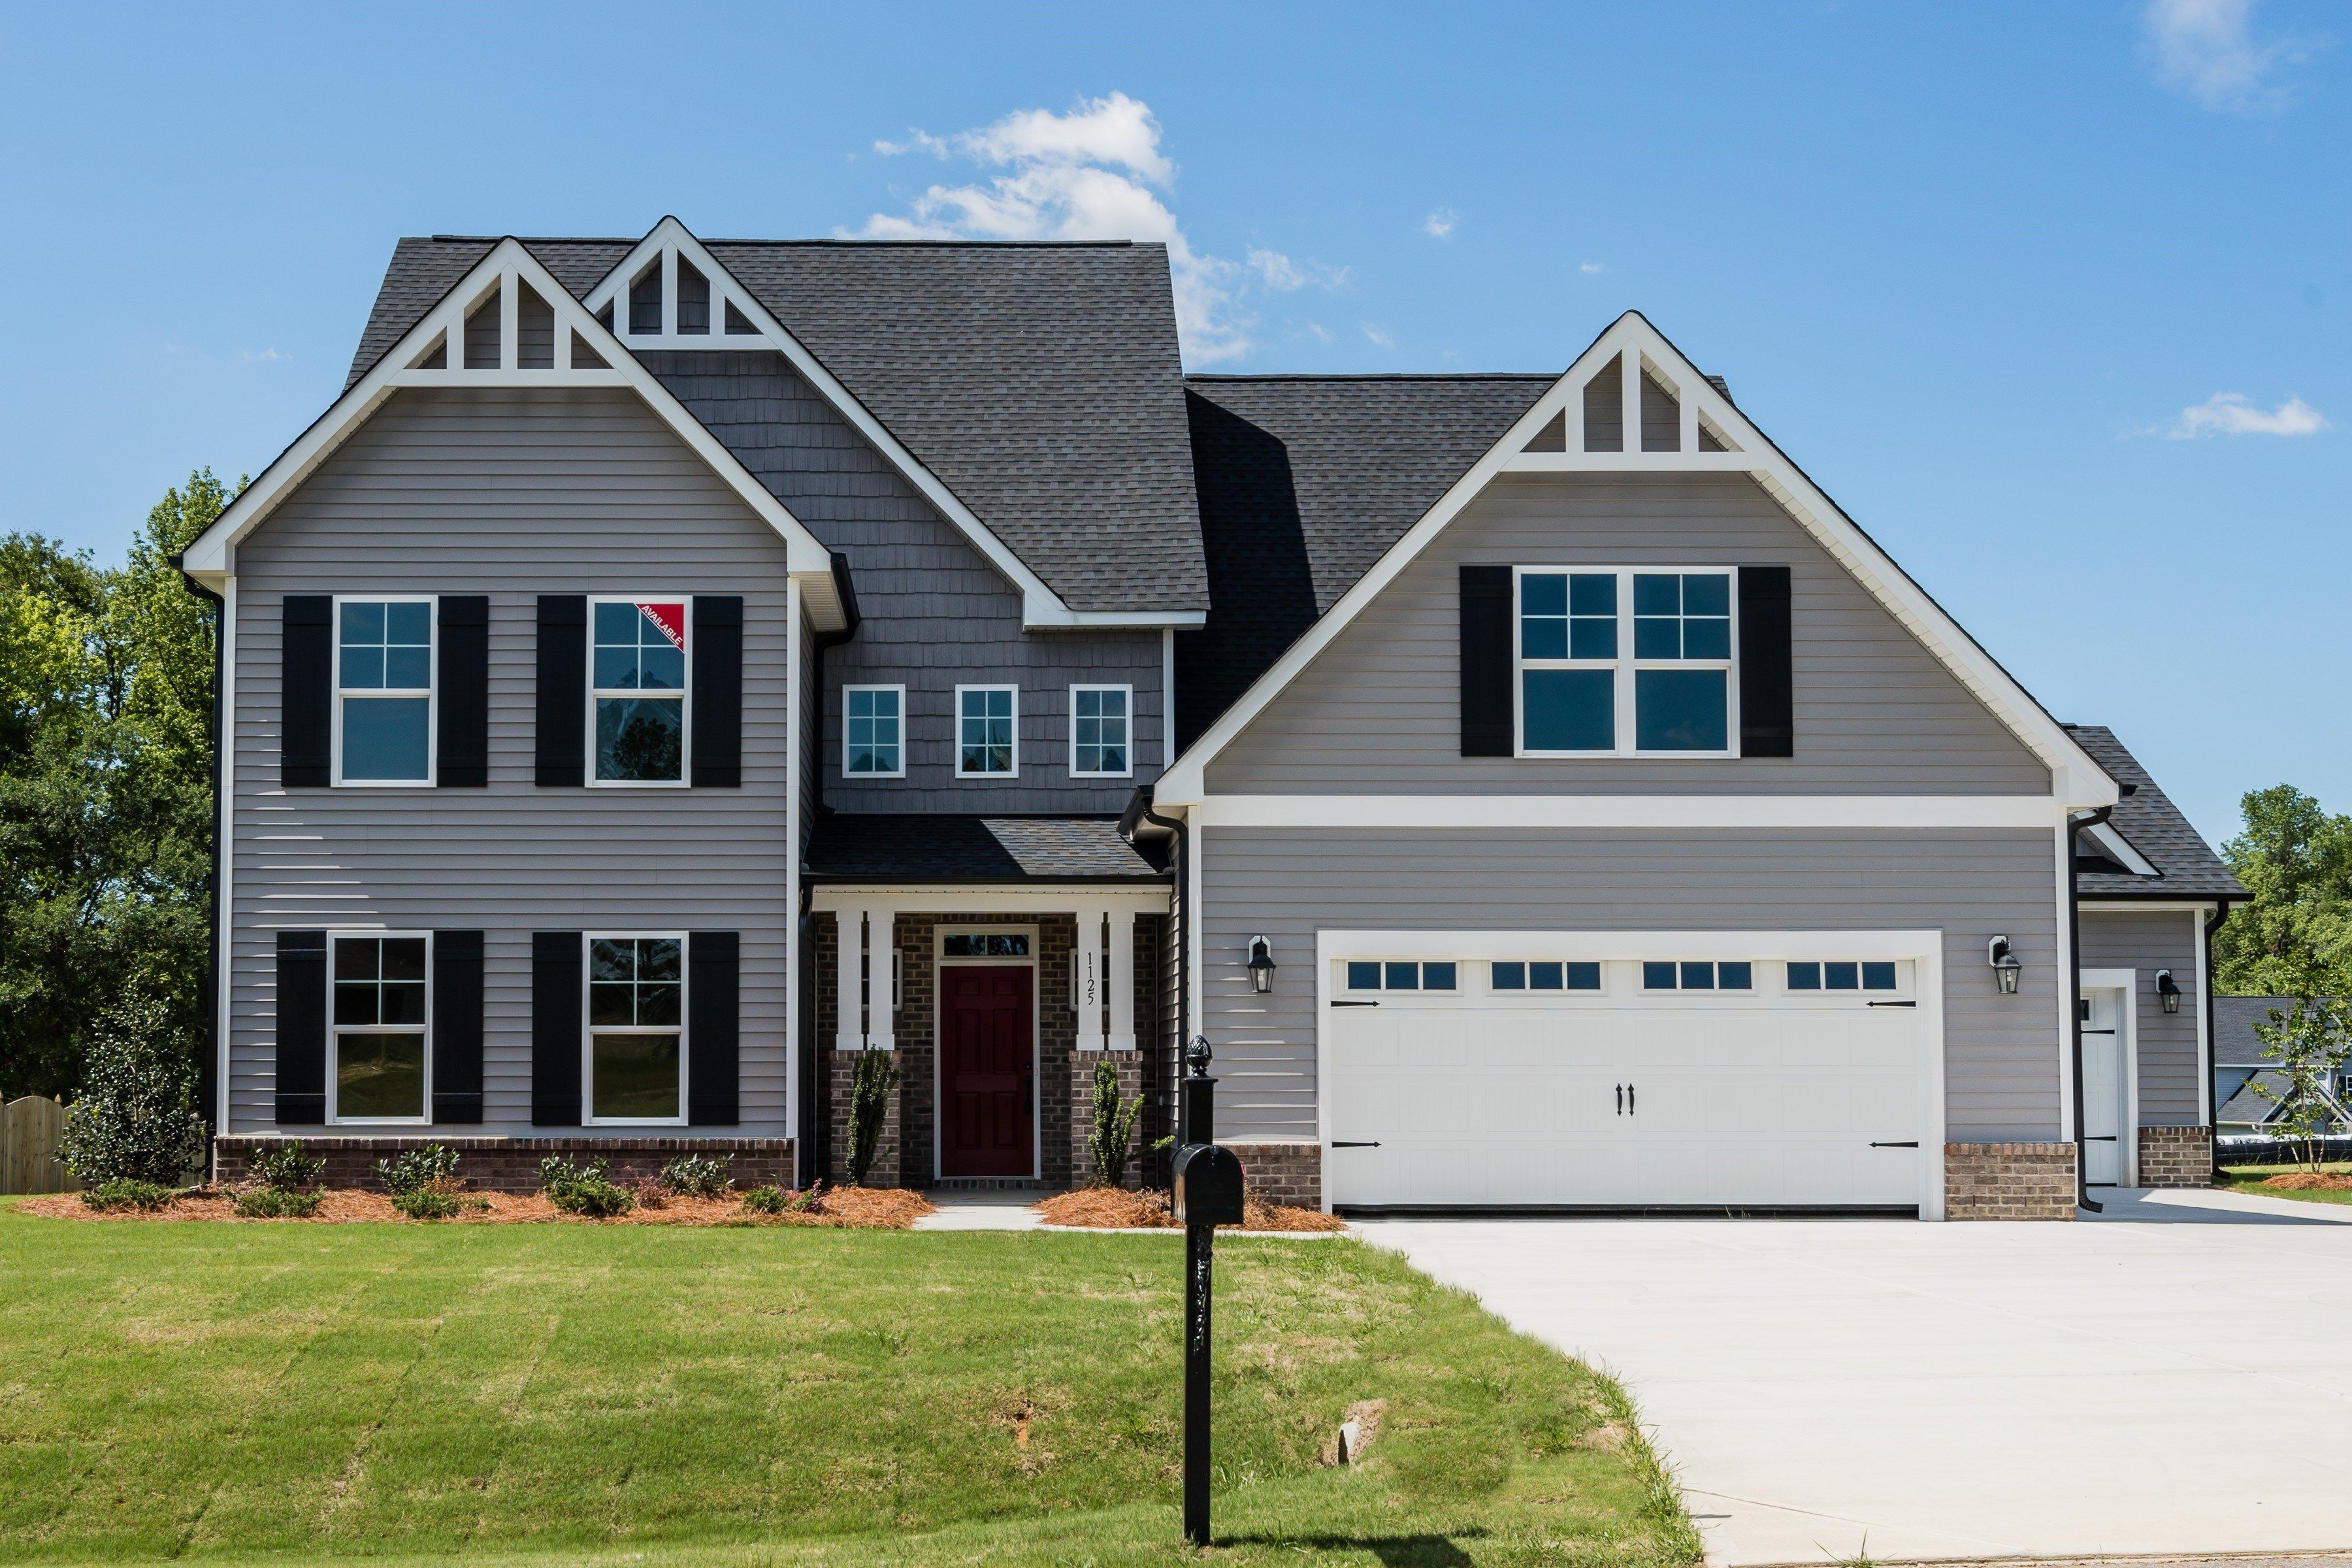 clayton homes savannah floor plans trend home design and stratton floor plan by savvy homes modern family room